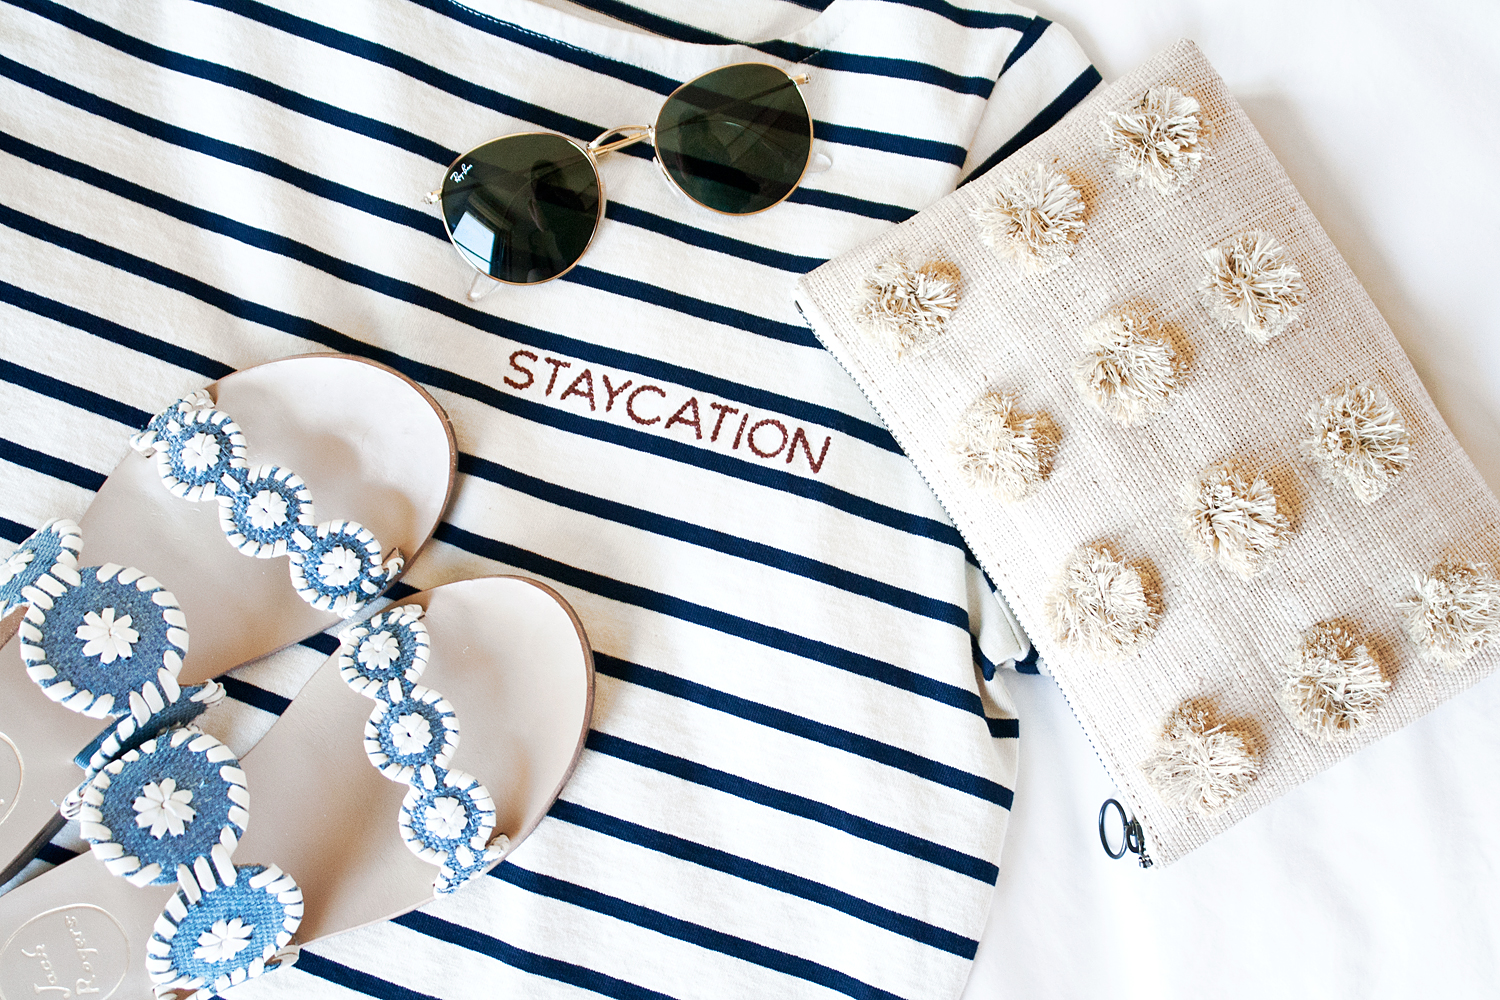 01staycation-travel-style-fashion-madewell-jackrogers